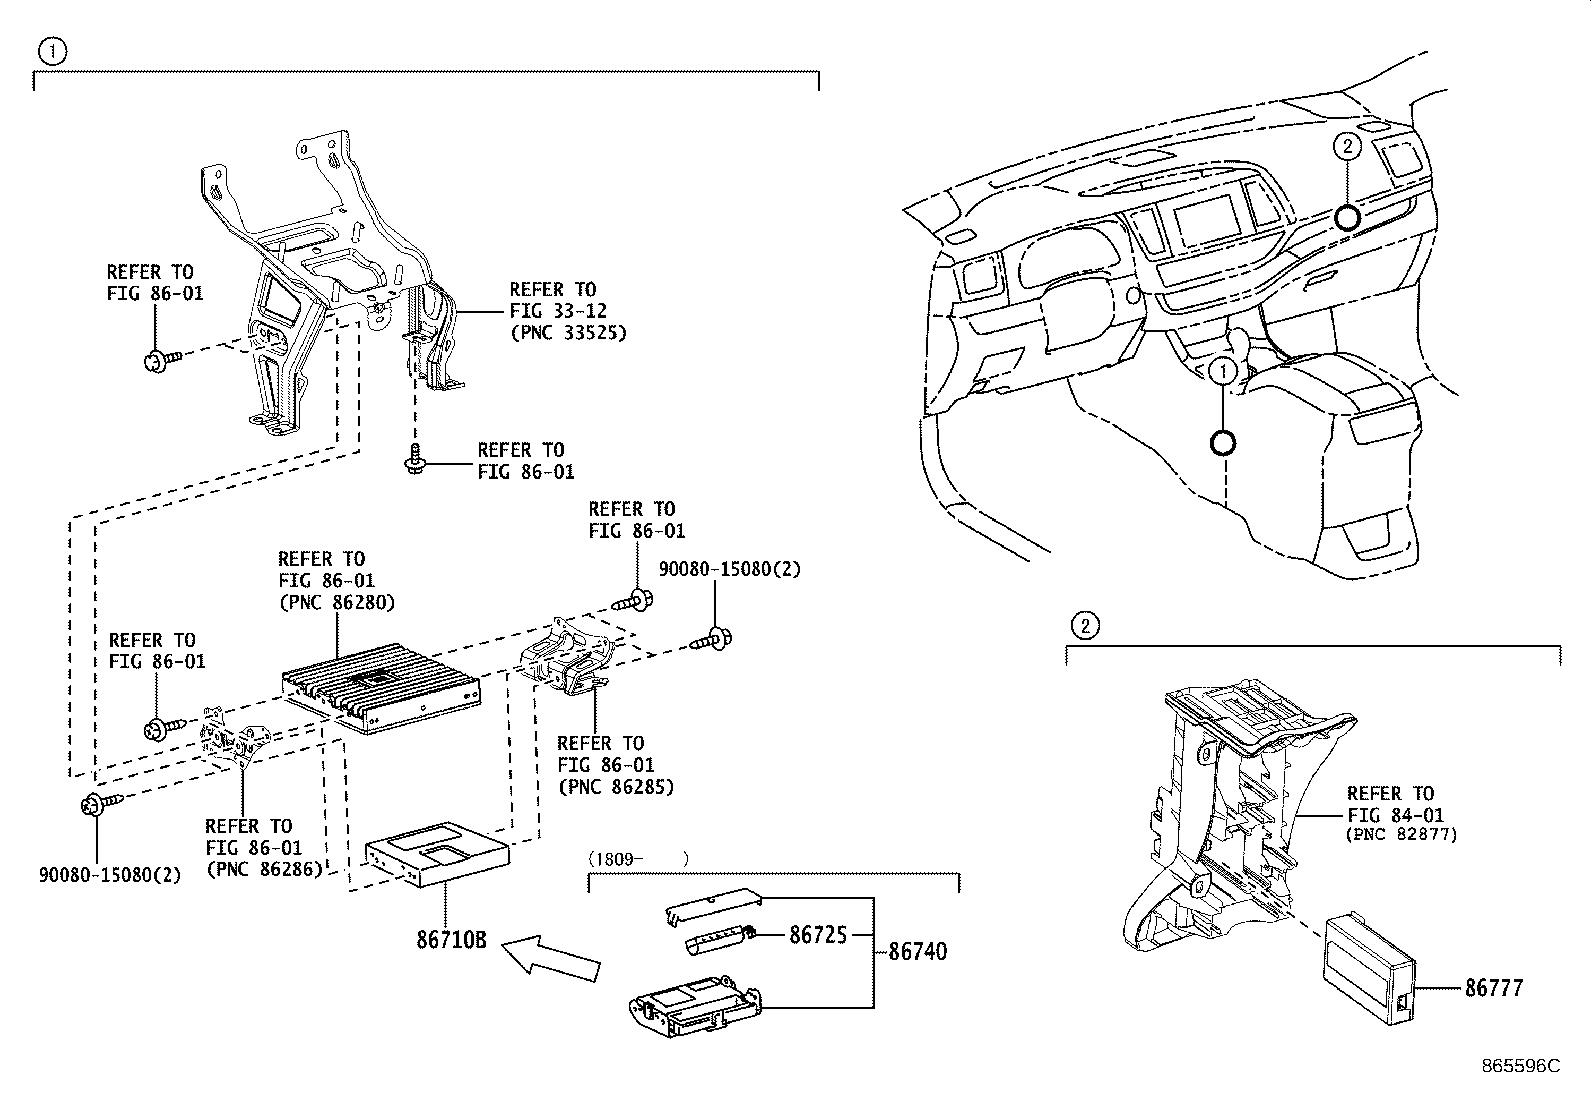 Toyota Highlander Computer Assembly Mayday System Spec